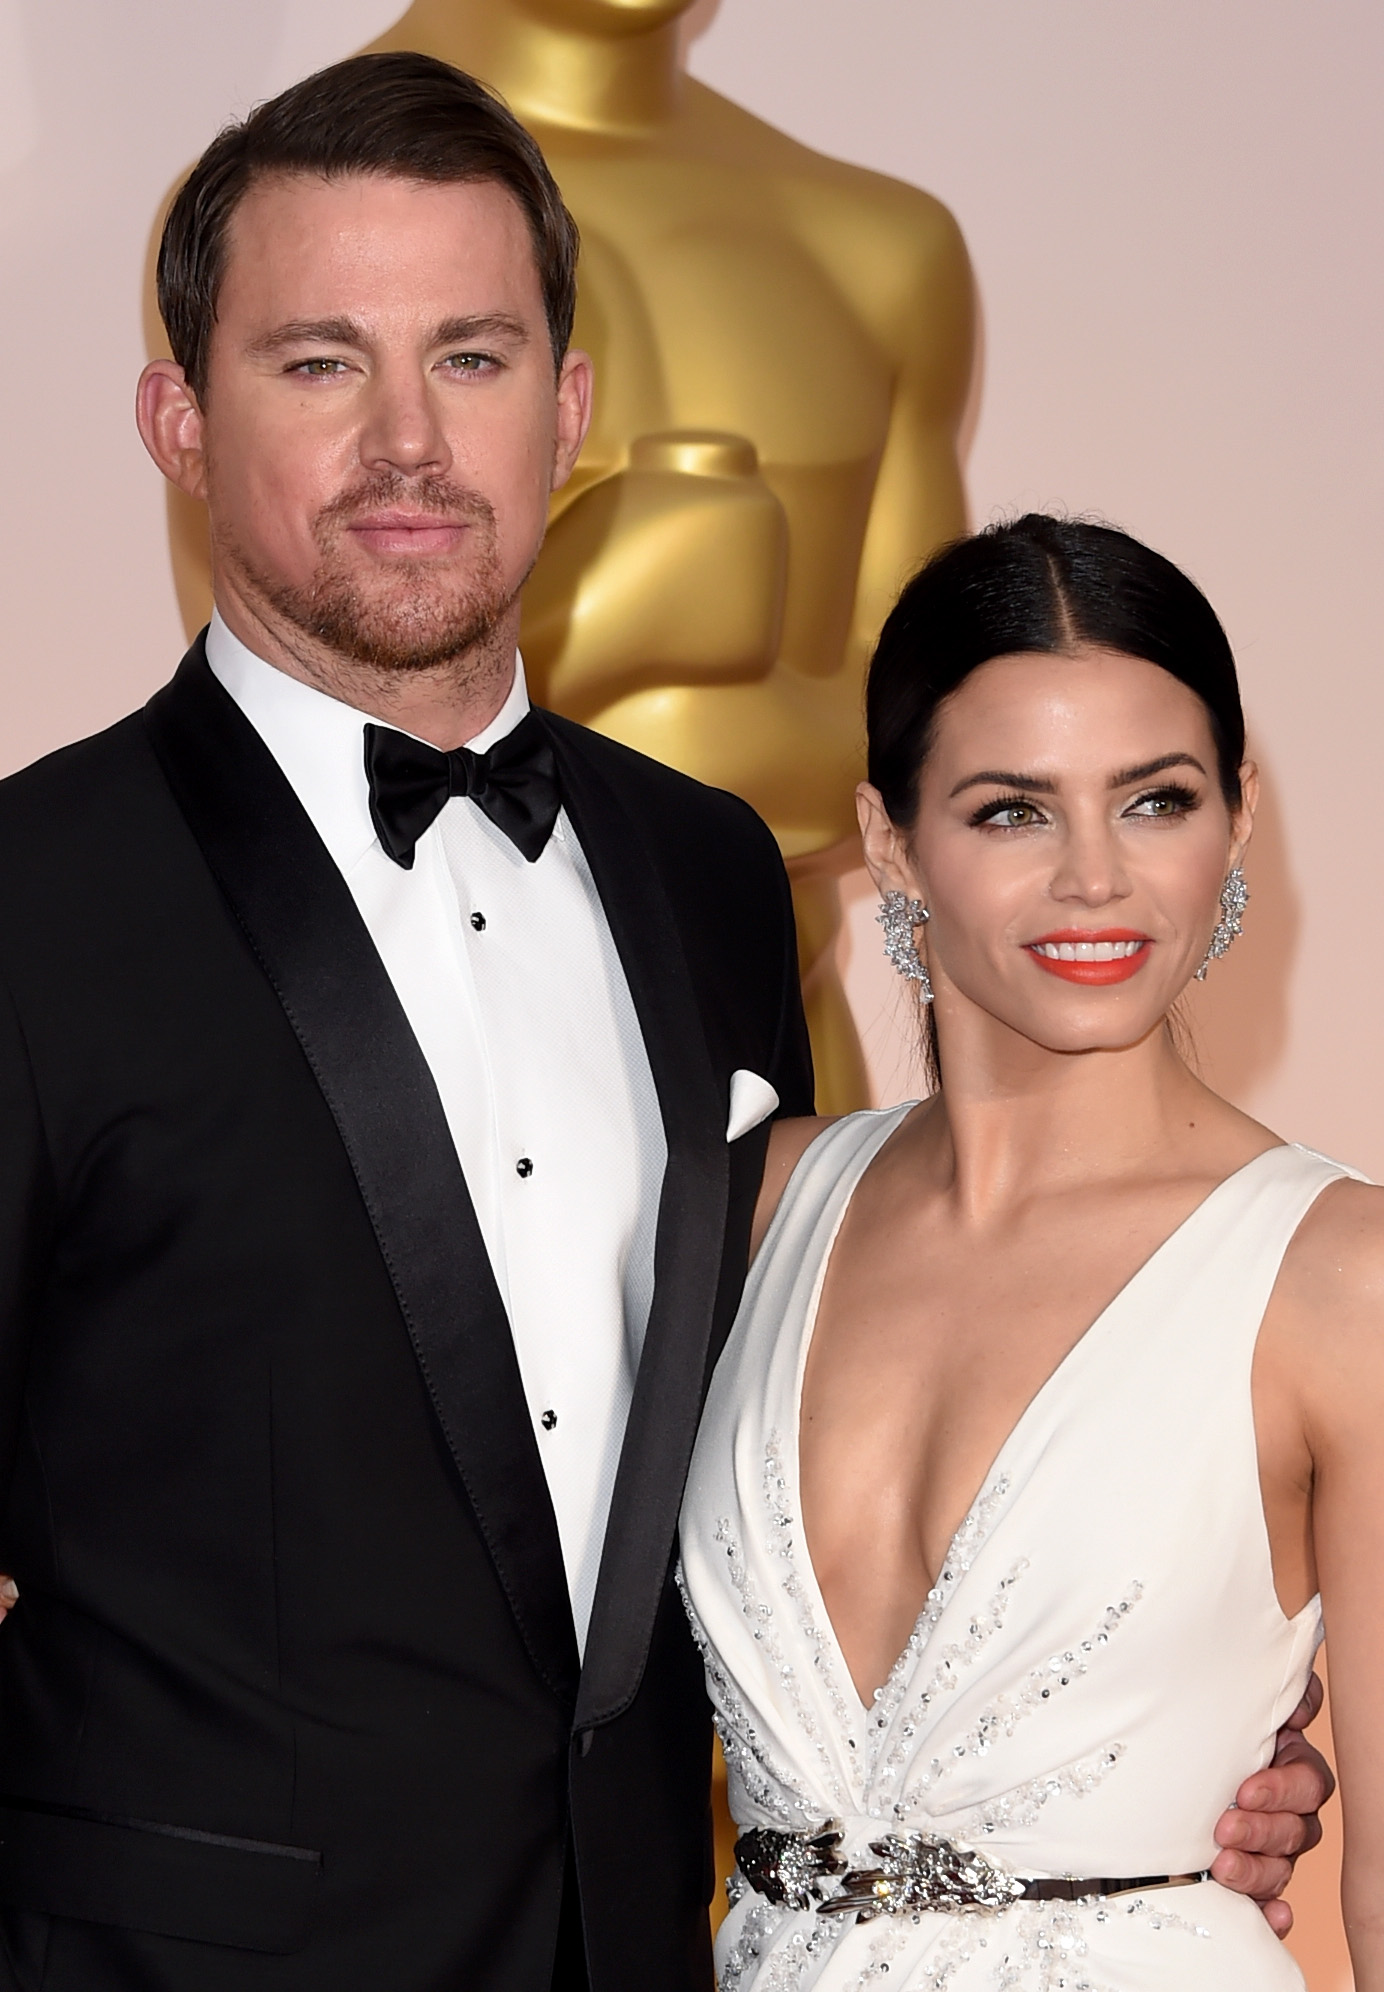 Channing Tatum Shares The Most Adorable Photo With Wife